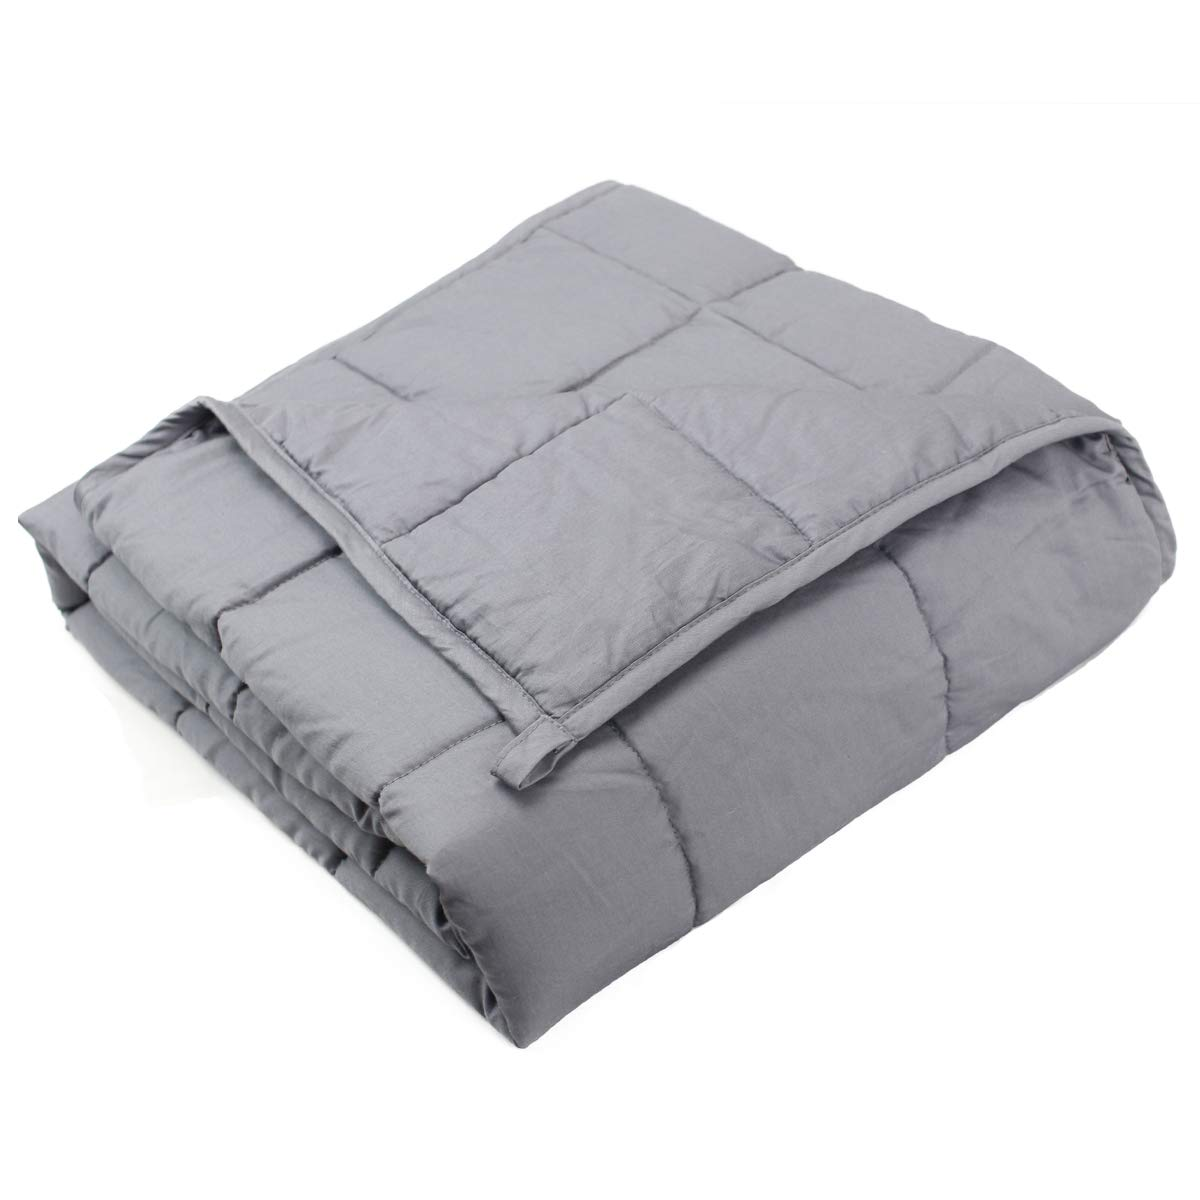 Dreambeauty Weighted Blanket (48''x72'',15lbs for 120-180 lbs Individual, Grey) 丨100% Cotton with Glass Beads丨Great Sleep for Adults,Youths Grey) 丨100% Cotton with Glass Beads丨Great Sleep for Adults Qingdao Feiyang Co. Ltd